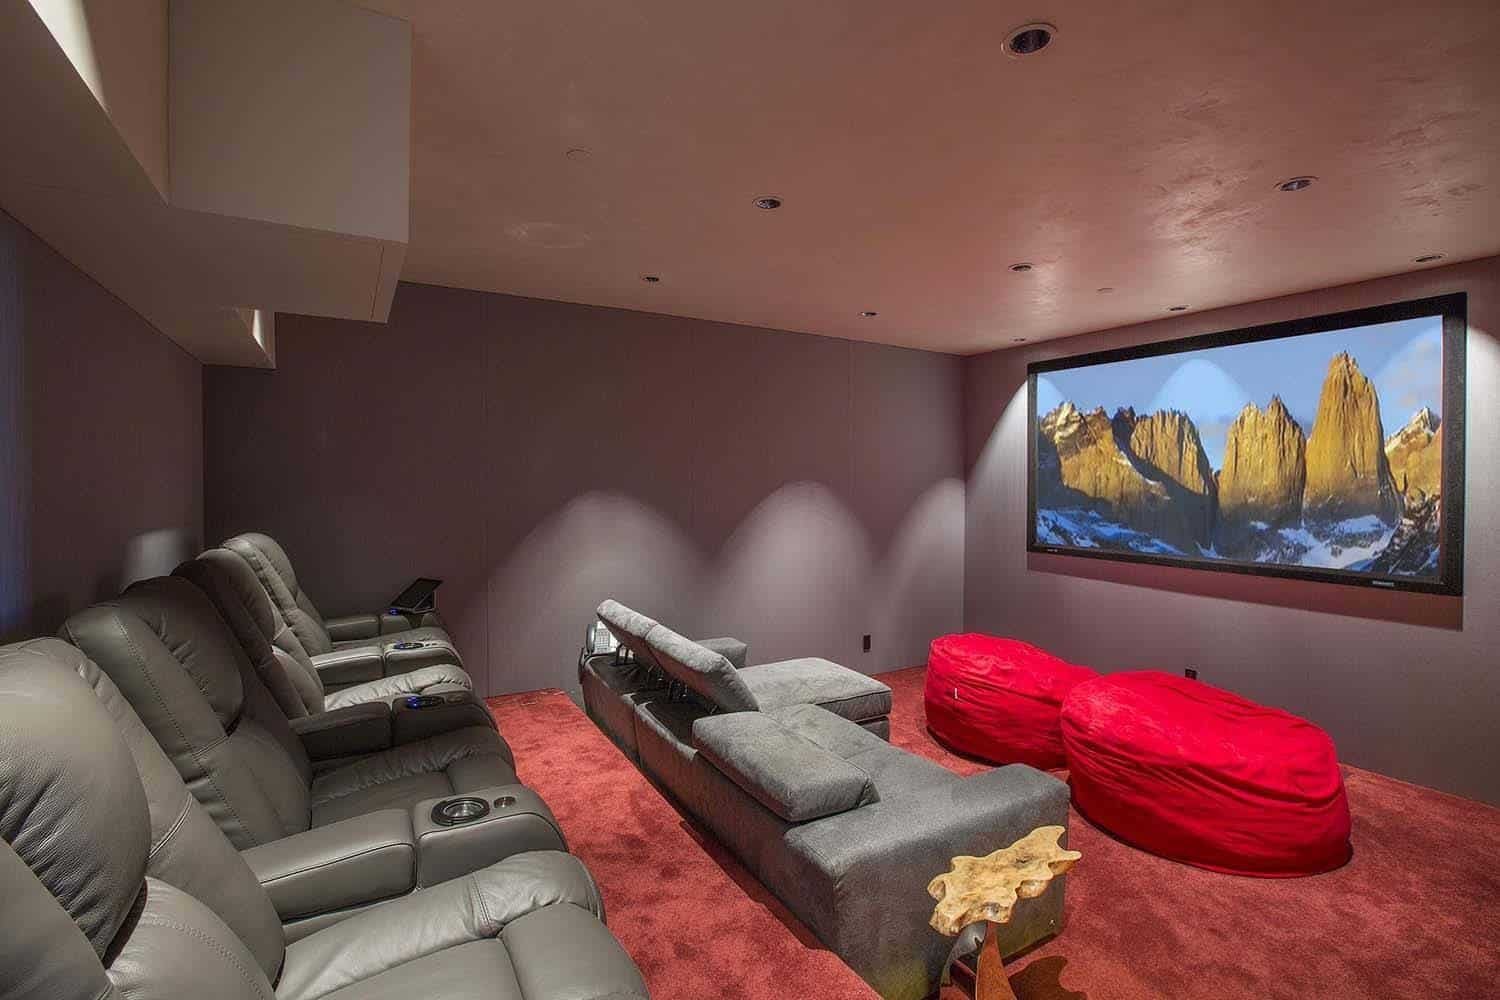 Modern-Residence-Colorado-Poss Architecture-51-1 Kindesign